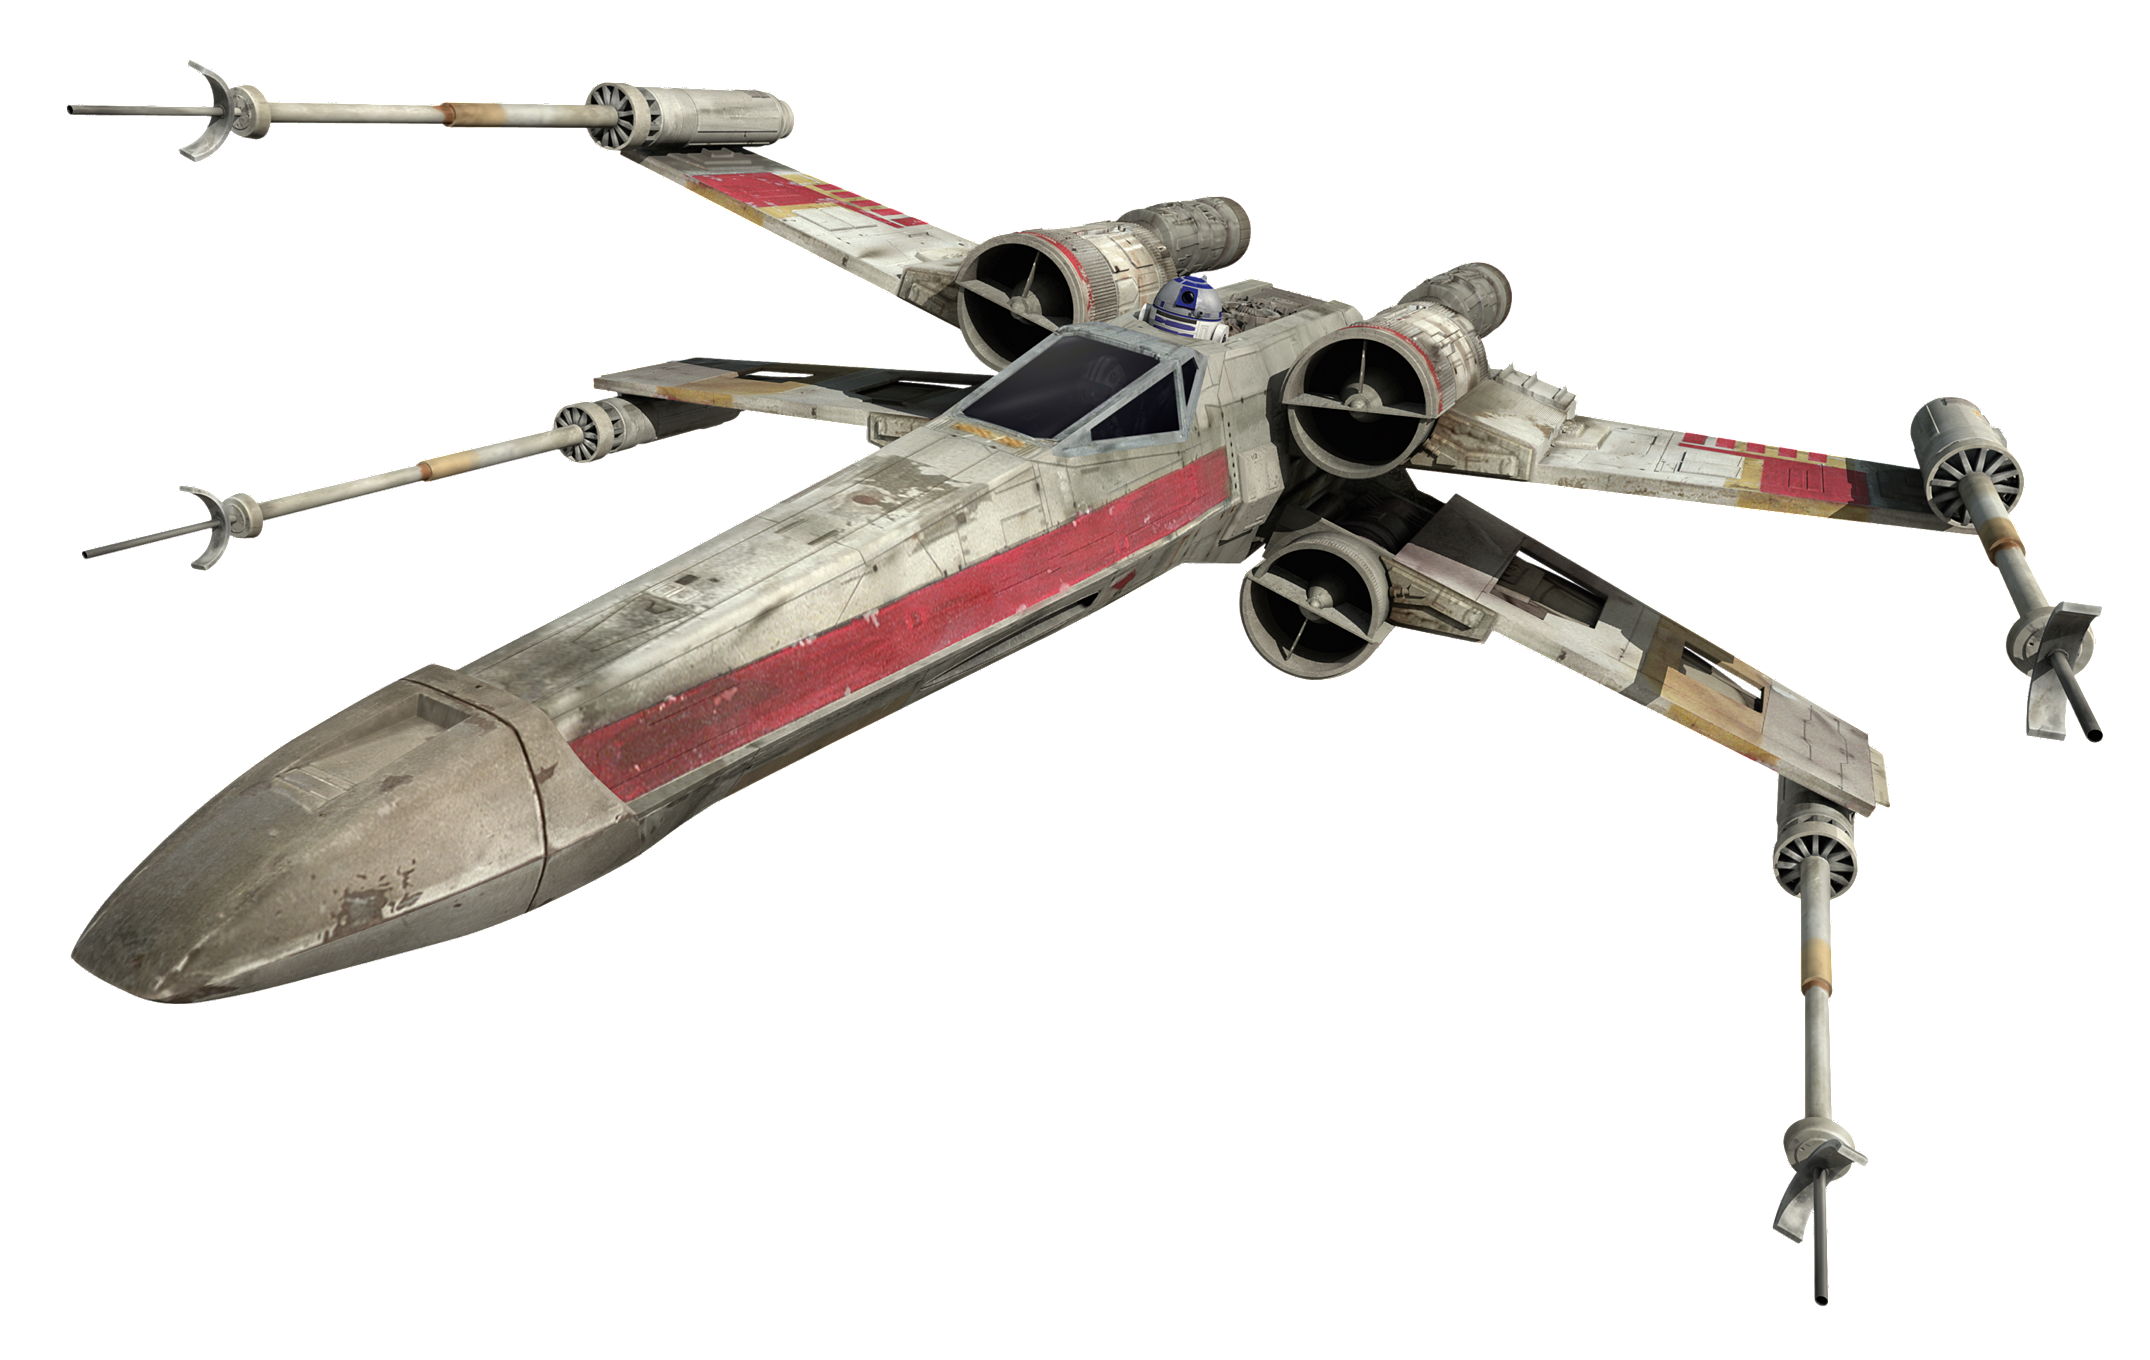 Star Wars clipart aircraft Find White Pinterest Pin on